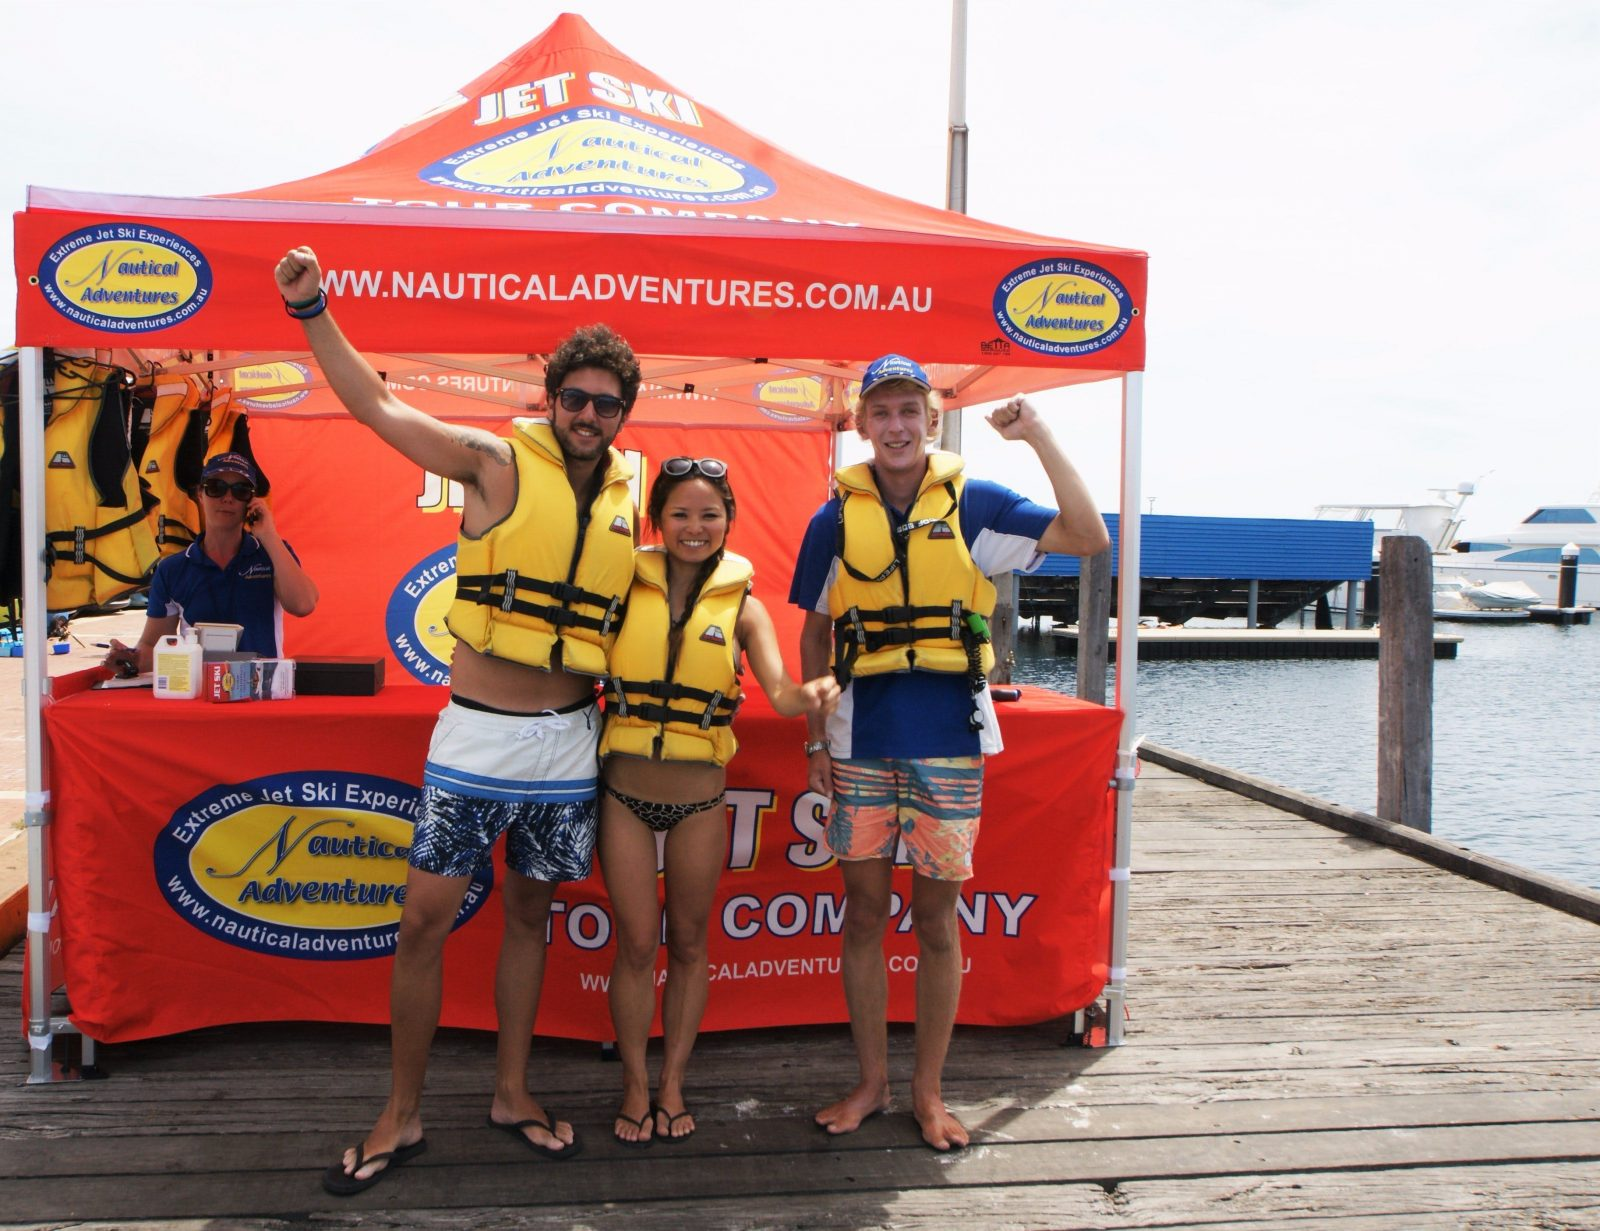 Nautical Adventures Jet Ski Tours, Wannanup, Western Australia